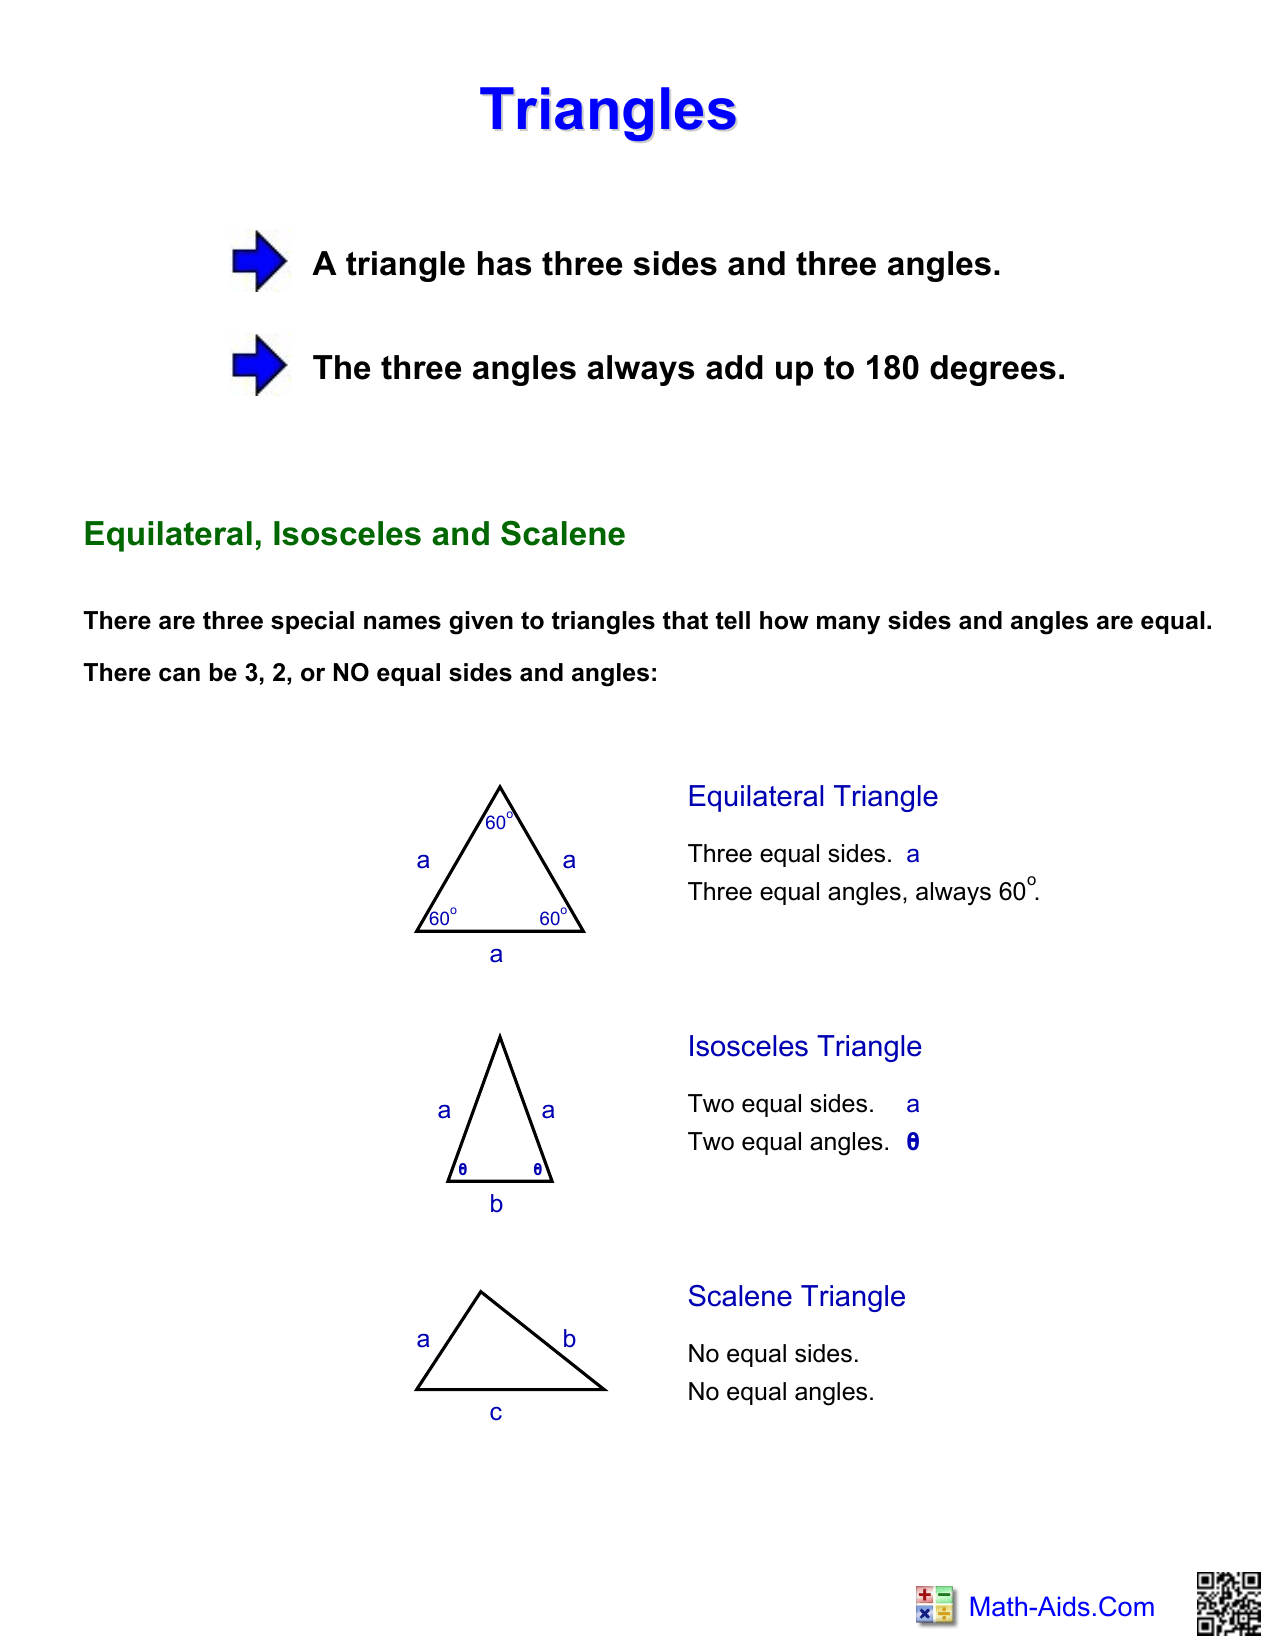 Triangle Facts